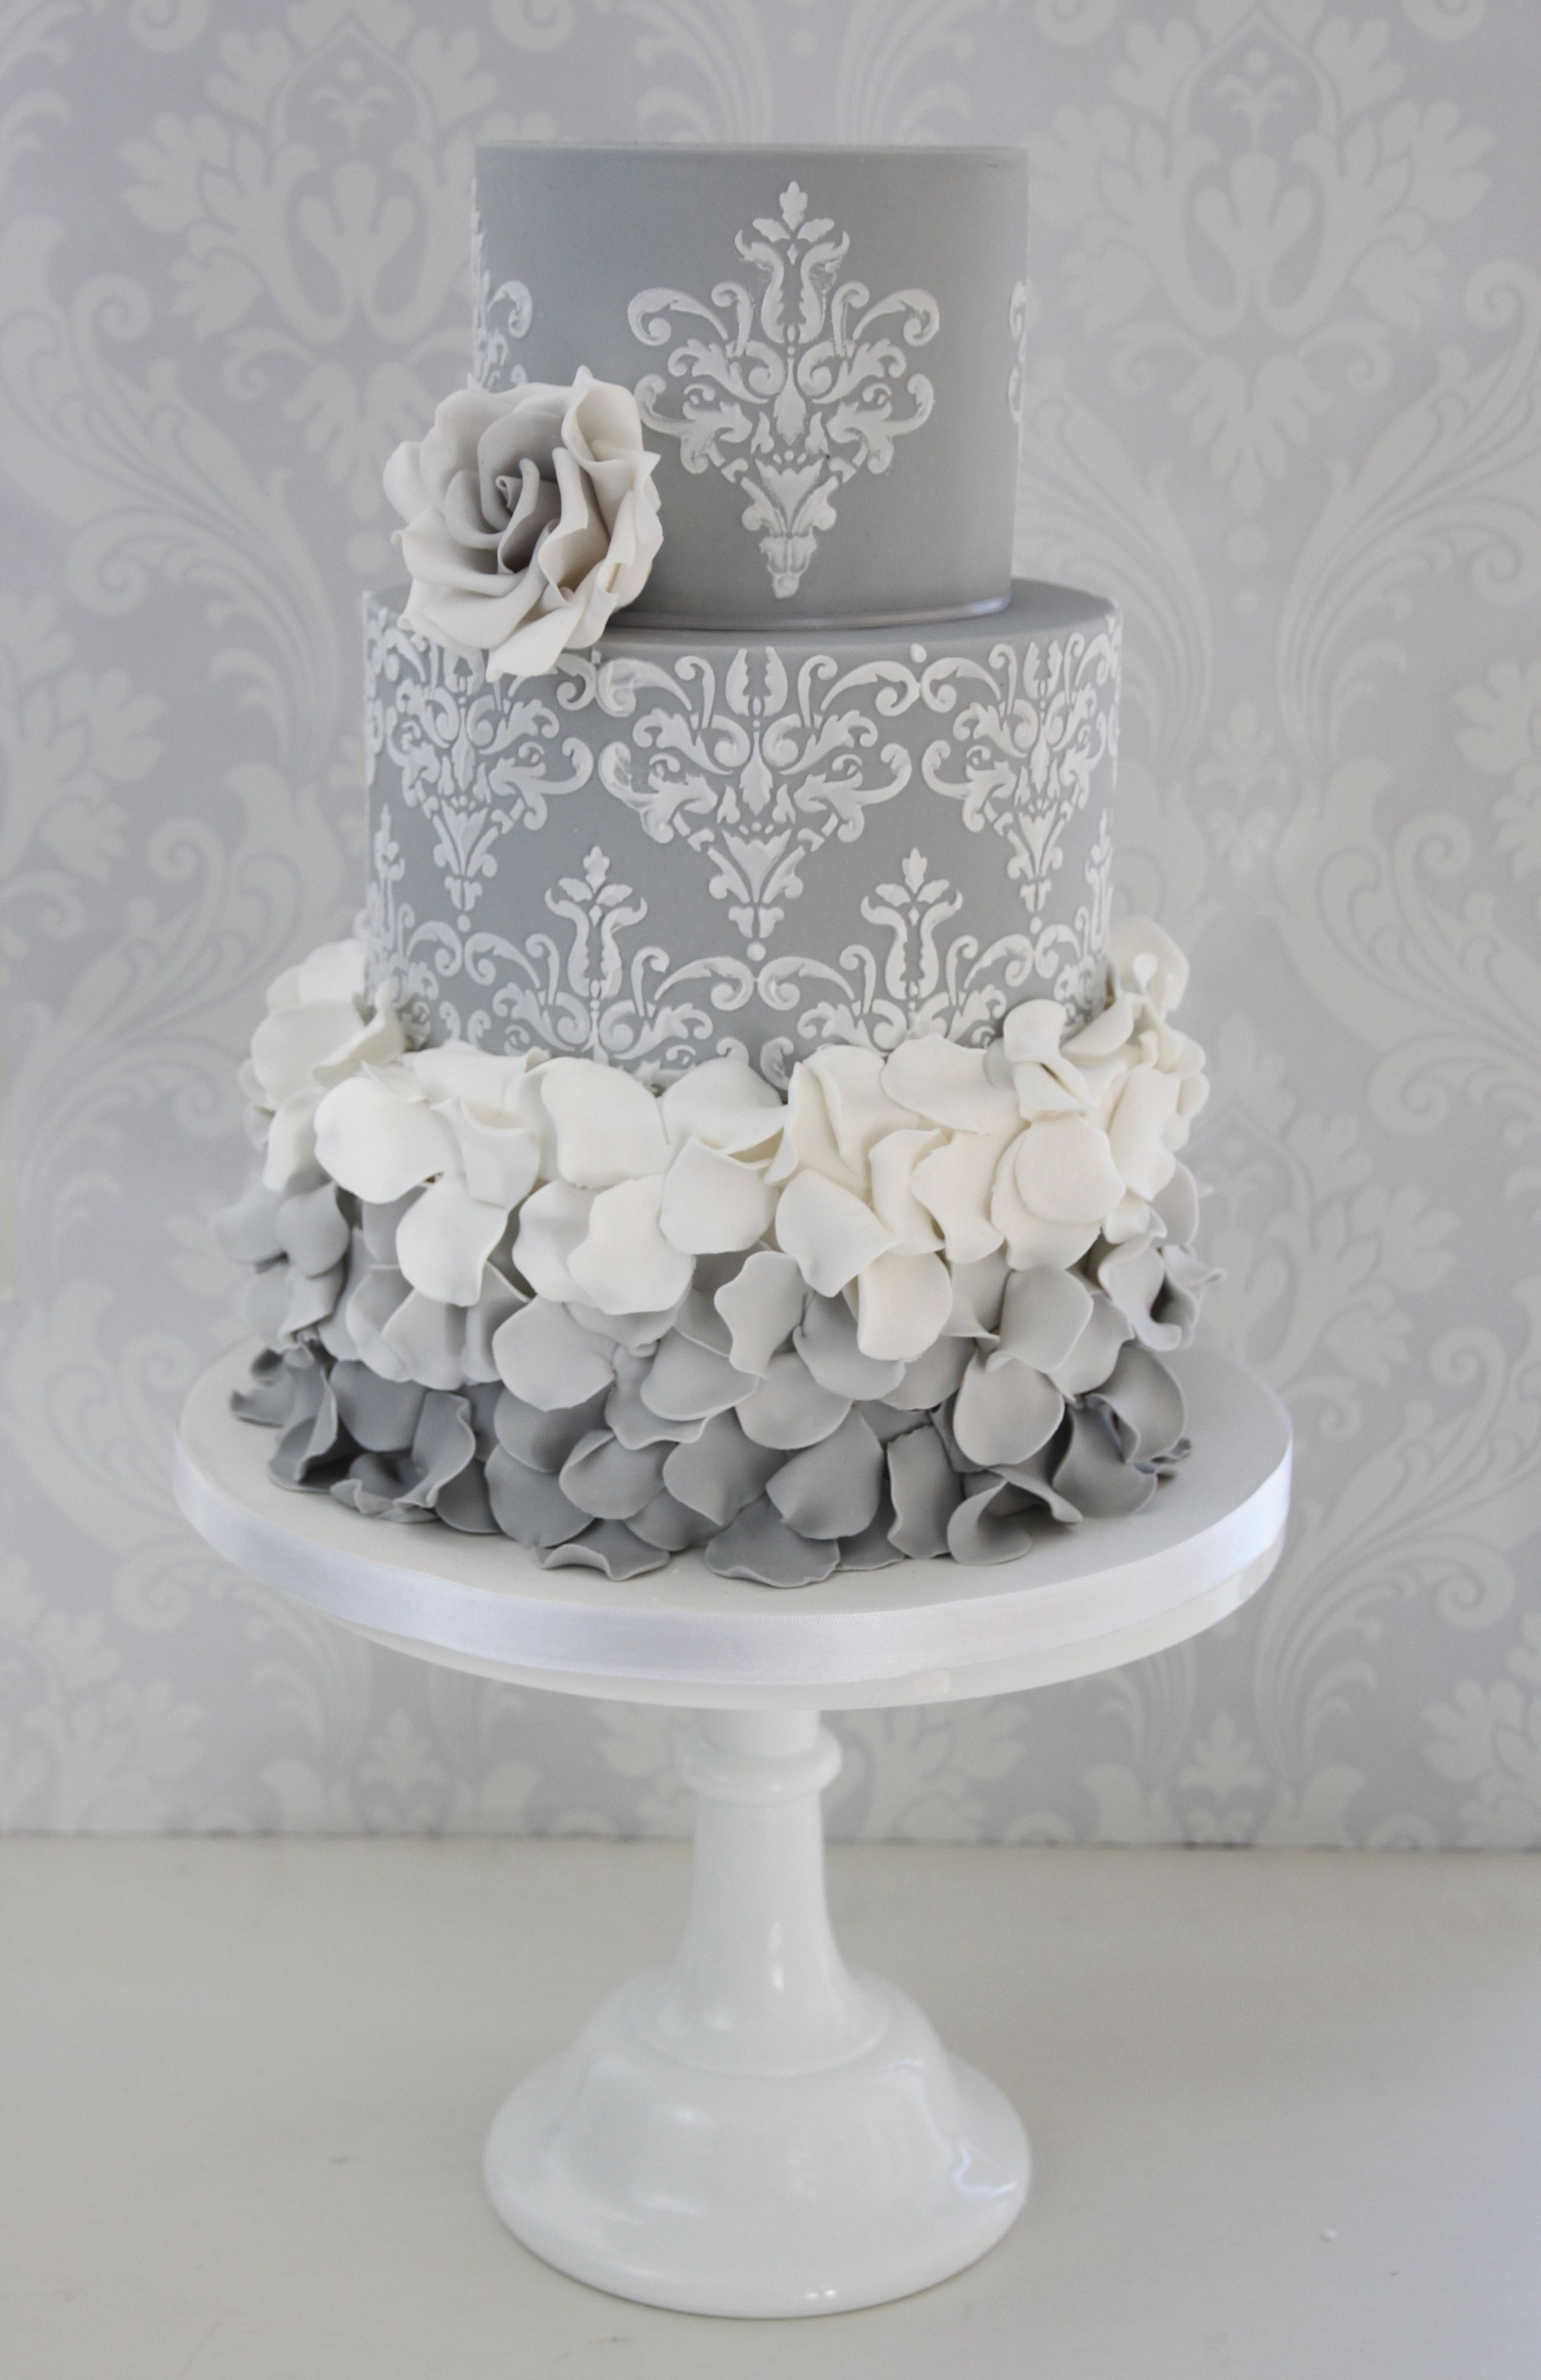 Ombre ruffles design by the enchanting cake company weddingcake